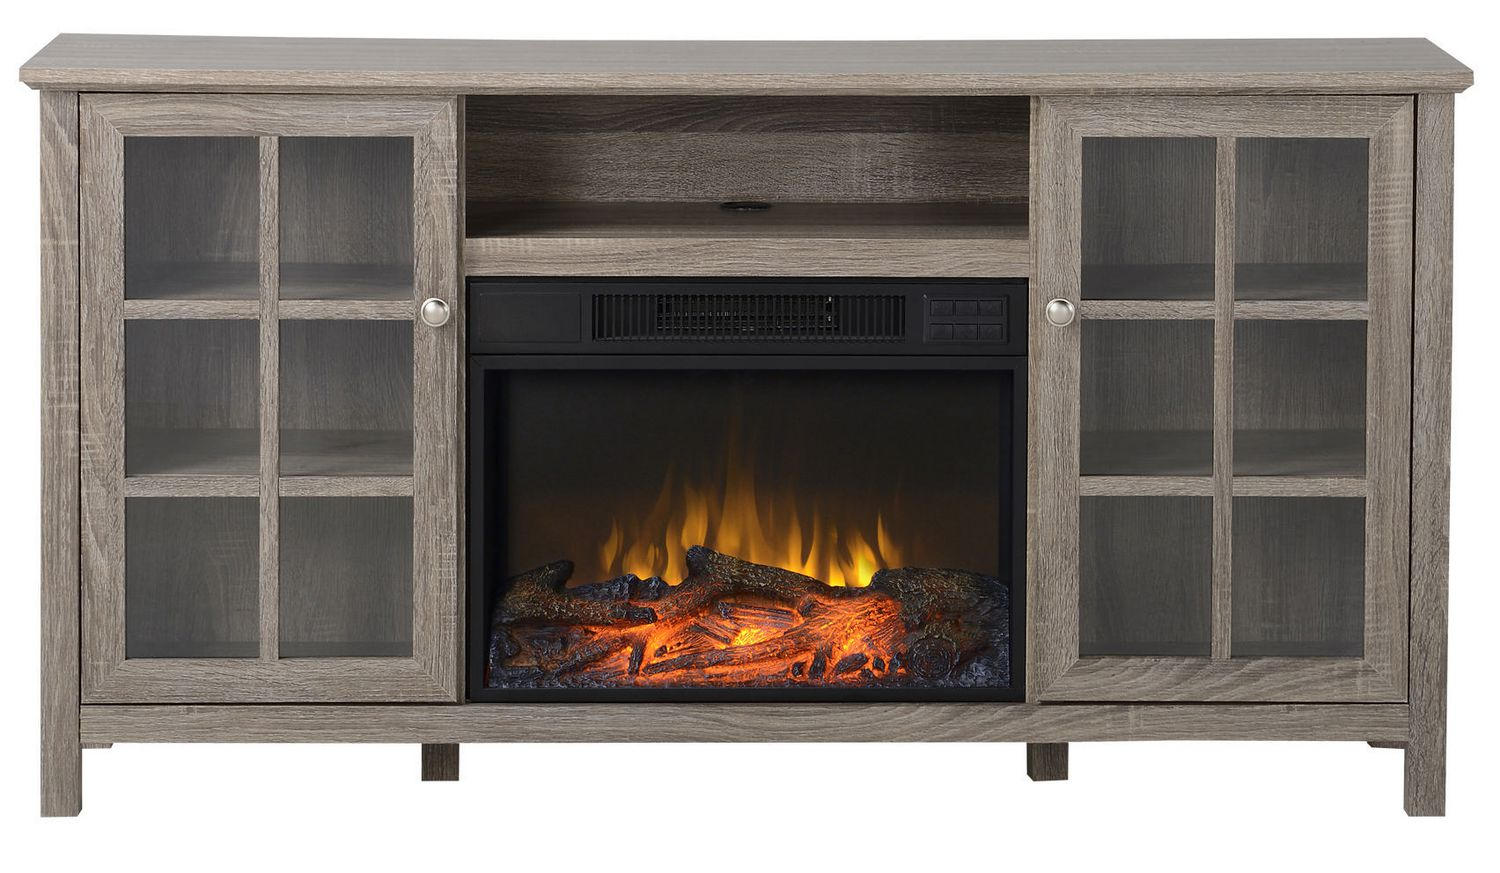 flamelux provence media fireplace in reclaimed wood 60 inch wide